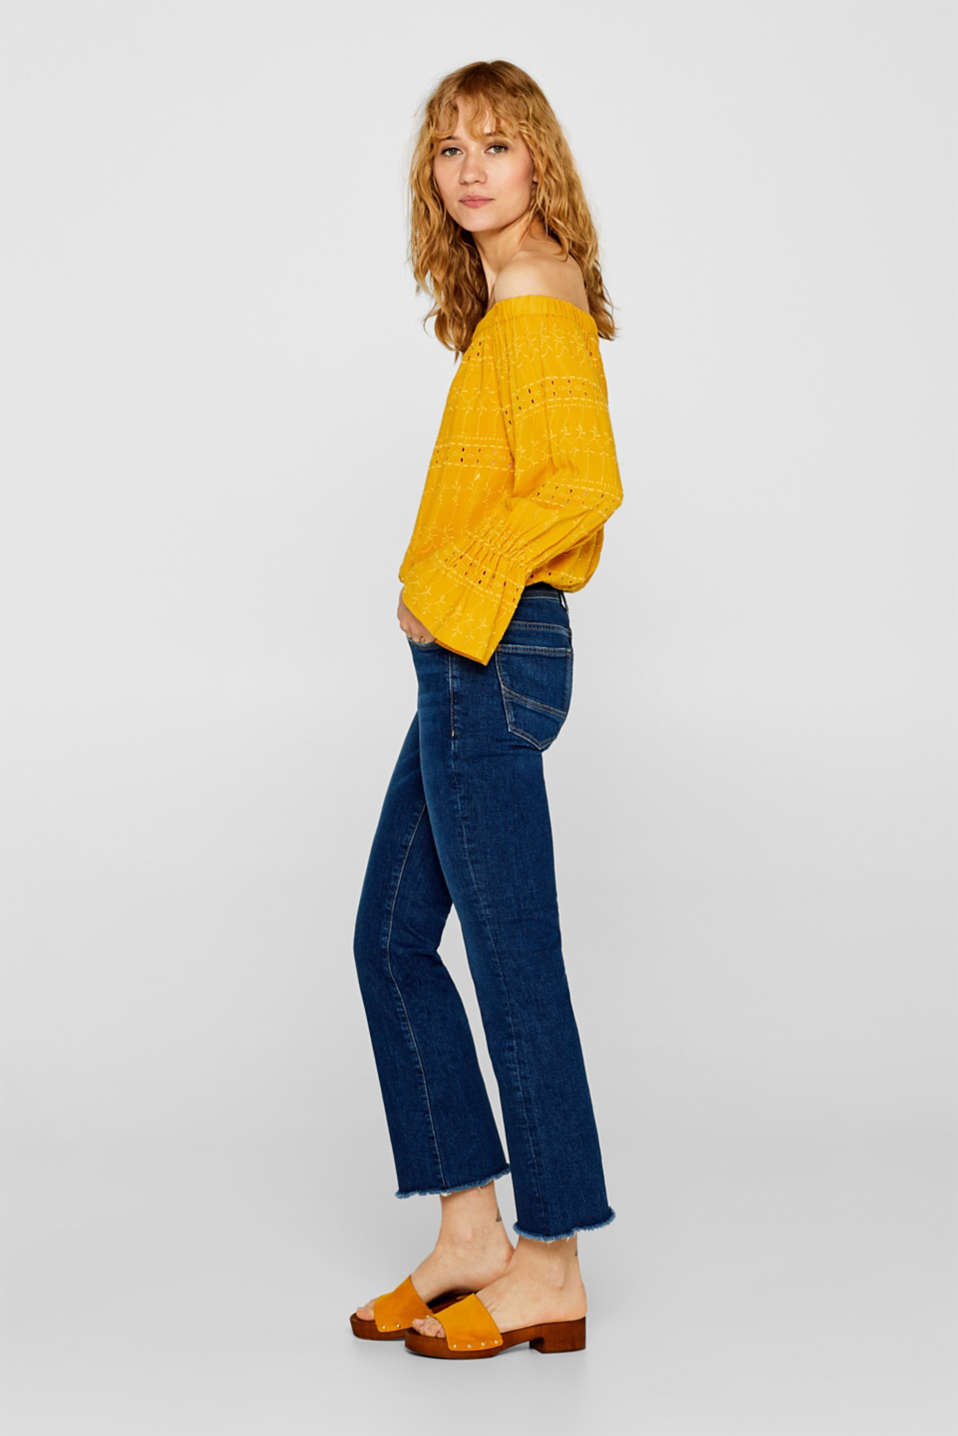 Cropped stretch jeans with frayed hems, recycled